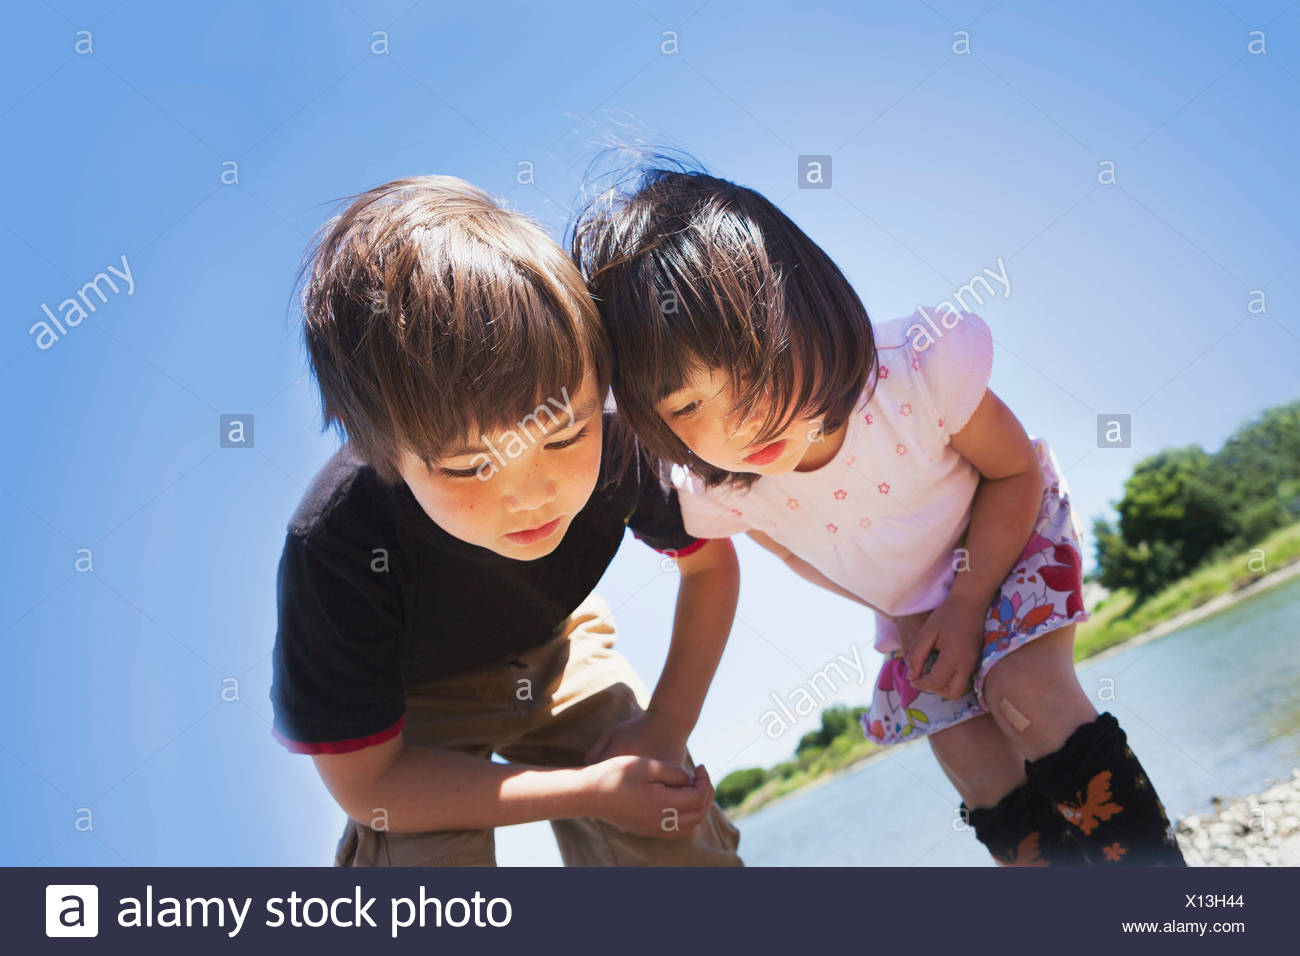 Boy and girl looking down at something Stock Photo